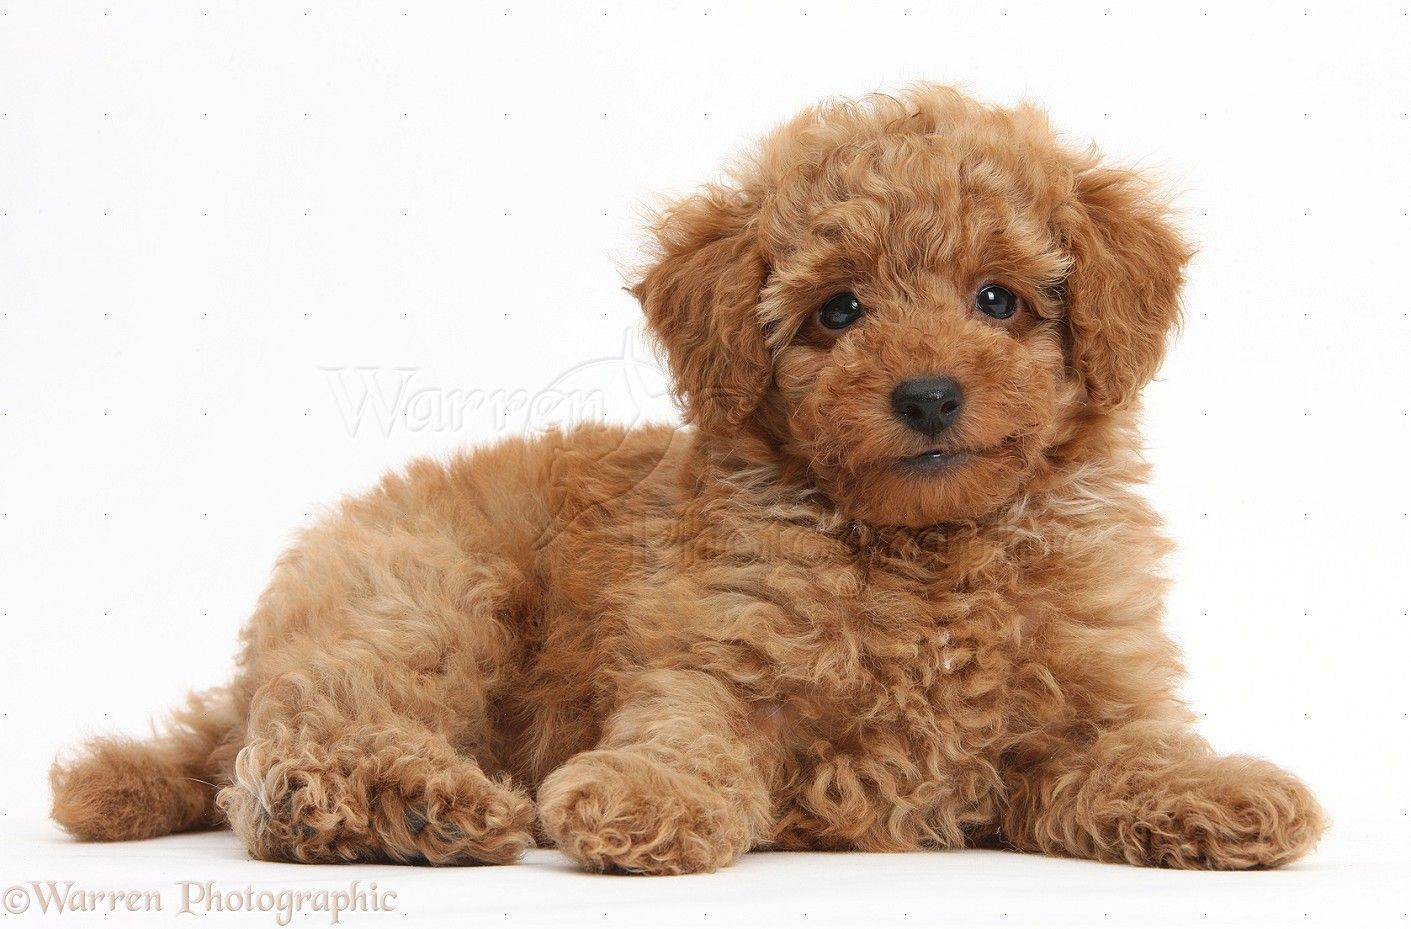 Dog Cute Red Toy Poodle Puppy Photo Poodle Puppy Cute Small Dogs Toy Poodle Puppy